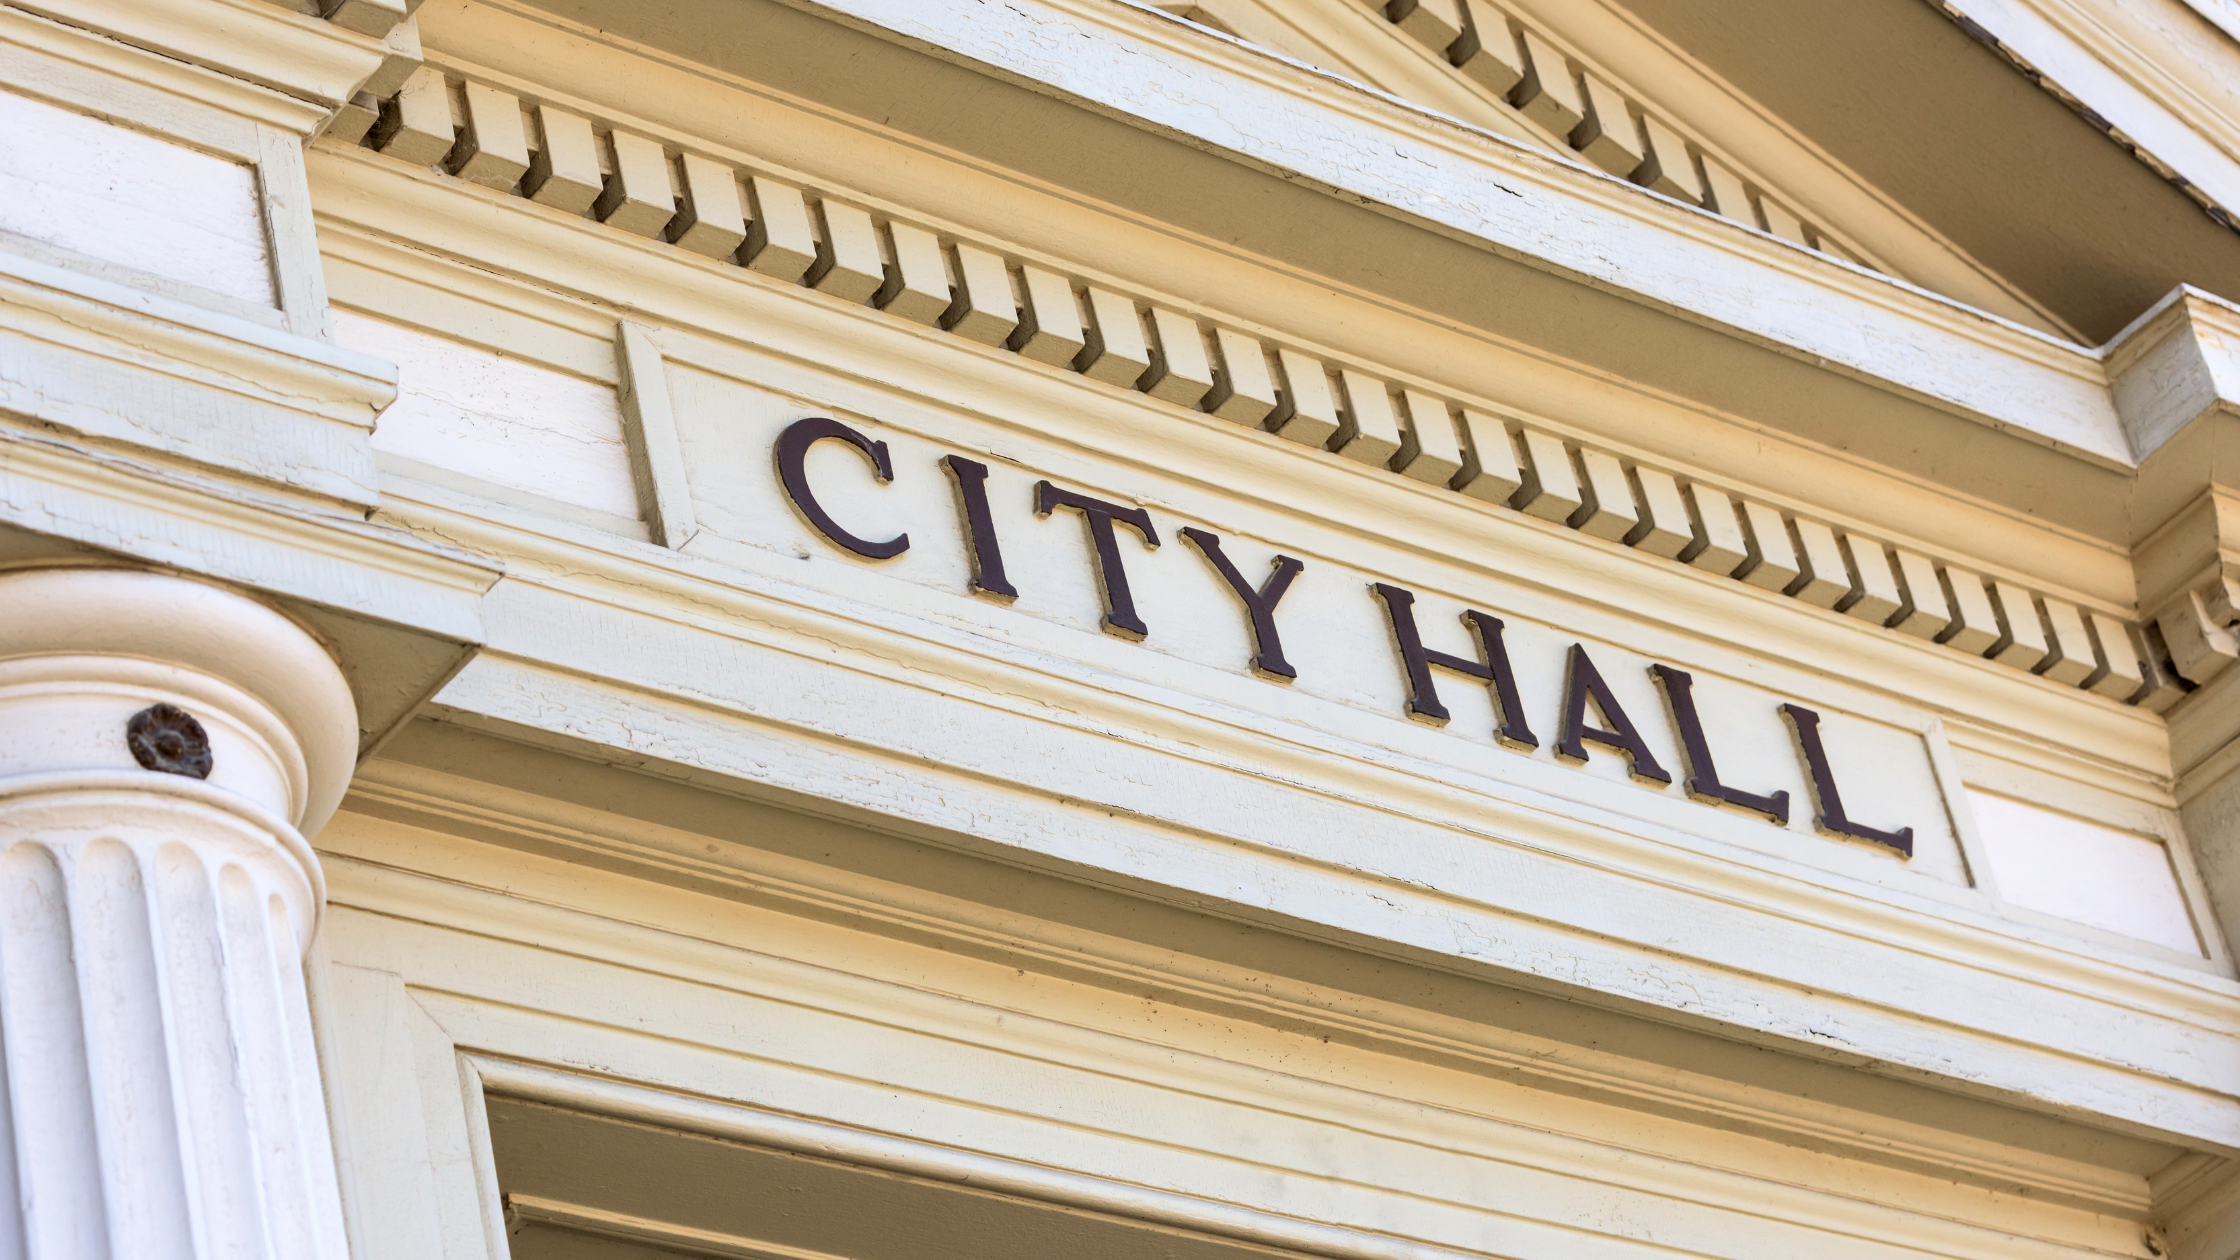 ABCs of elected office, photo of a city hall building